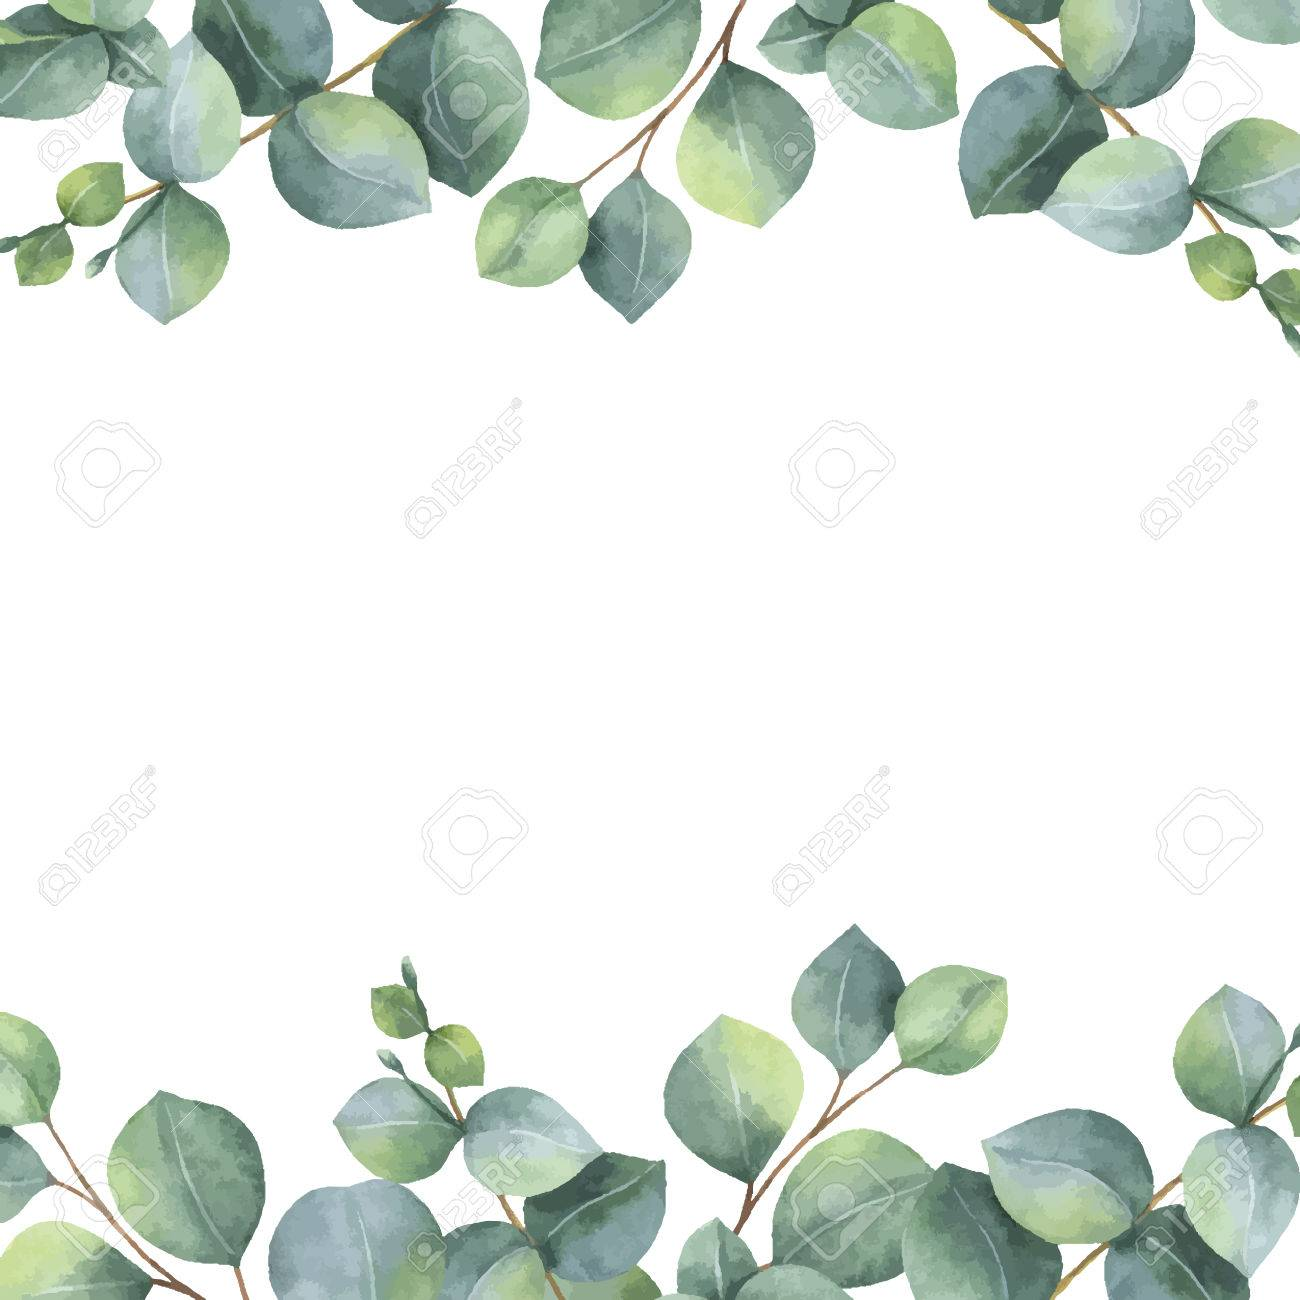 Watercolor vector green floral card with silver dollar eucalyptus leaves and branches isolated on white background. - 85830621